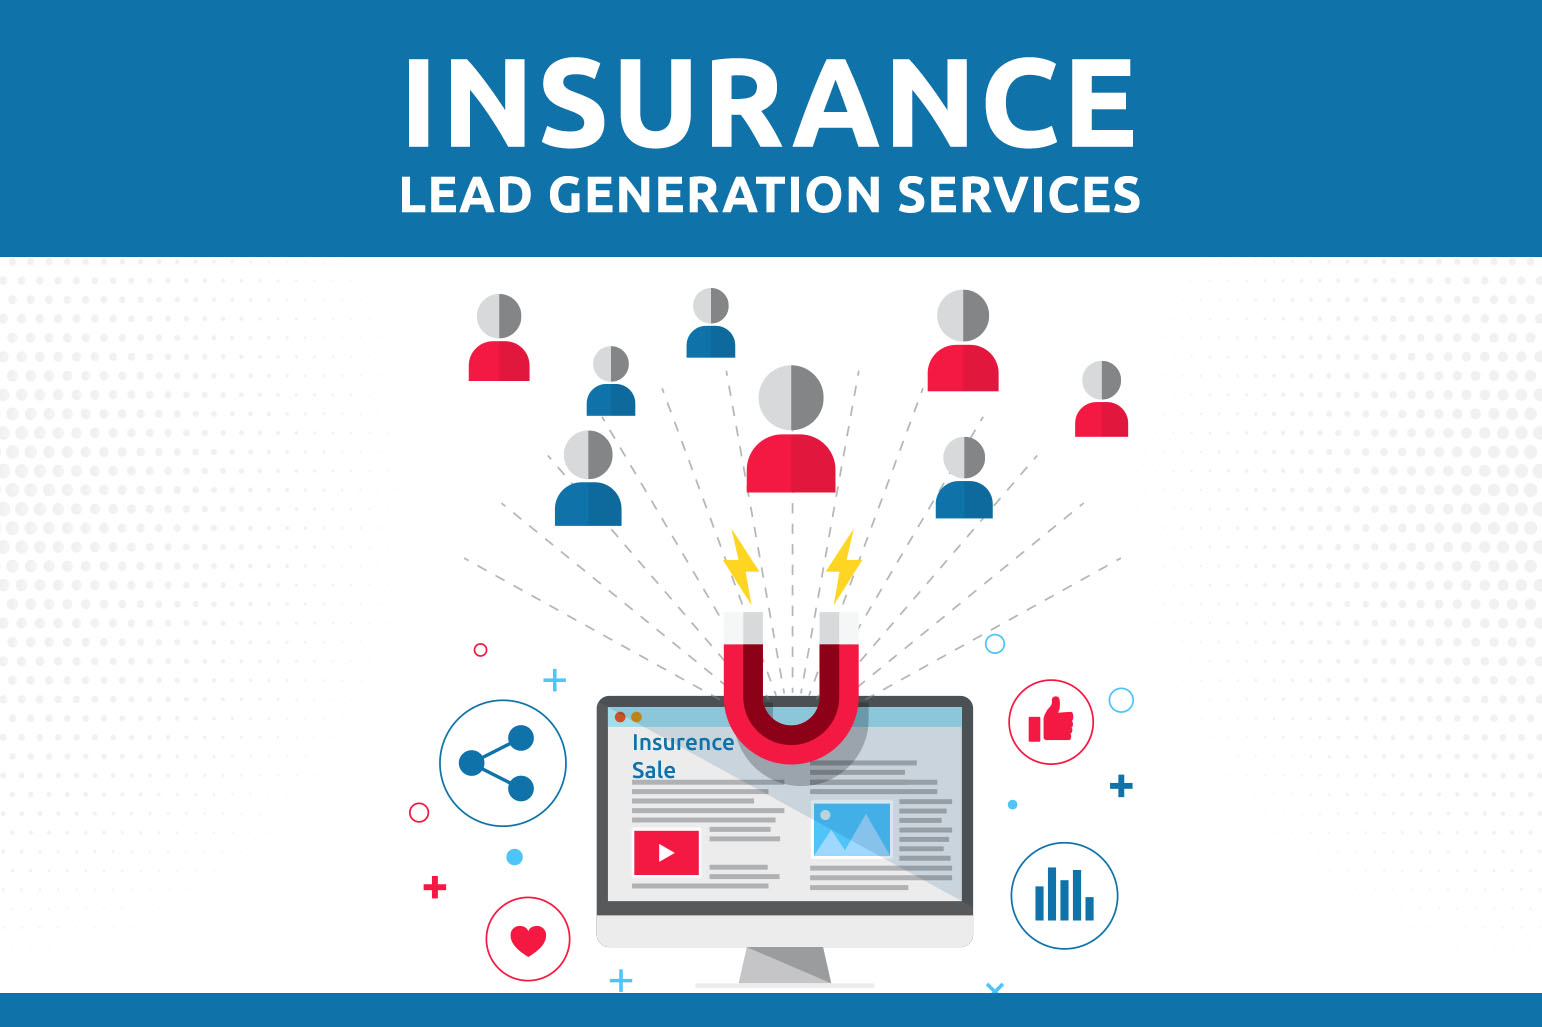 Insurance Lead Generation Services